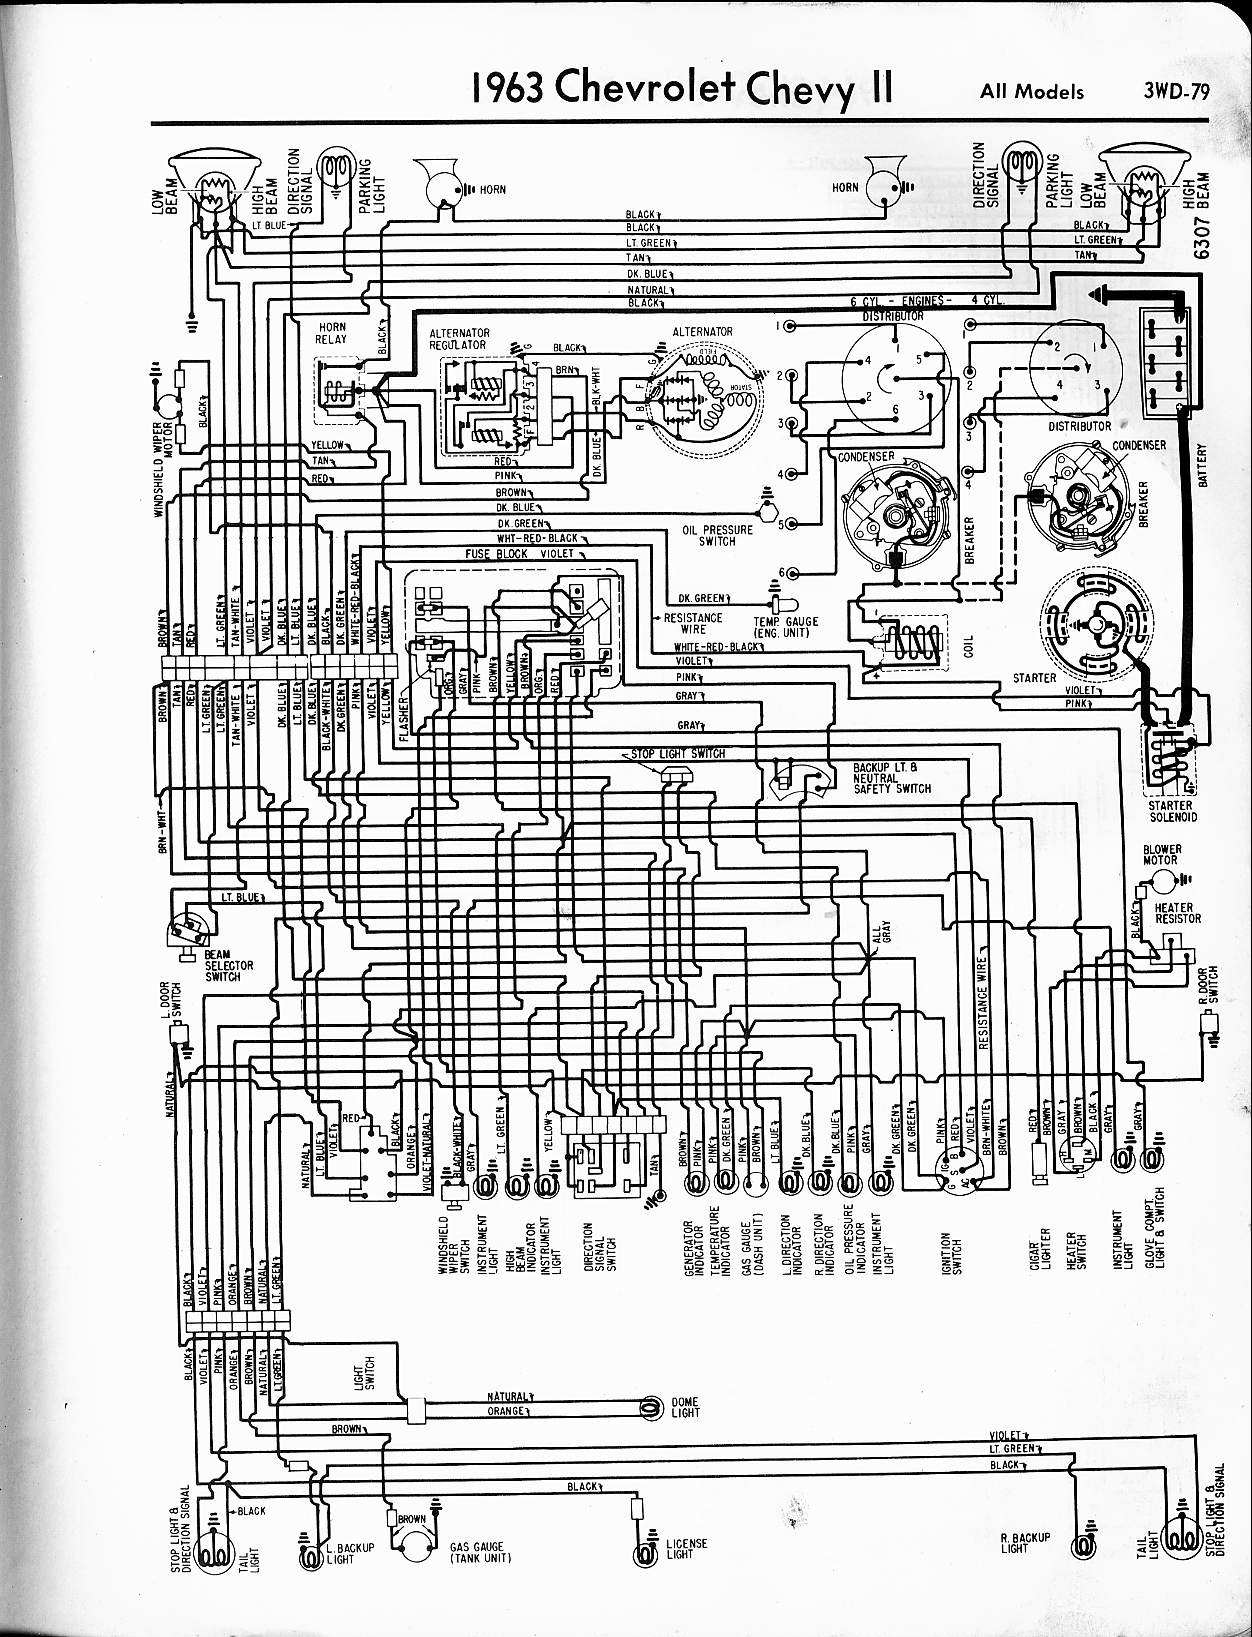 chevy wiring diagrams 1963 chevy ii all models